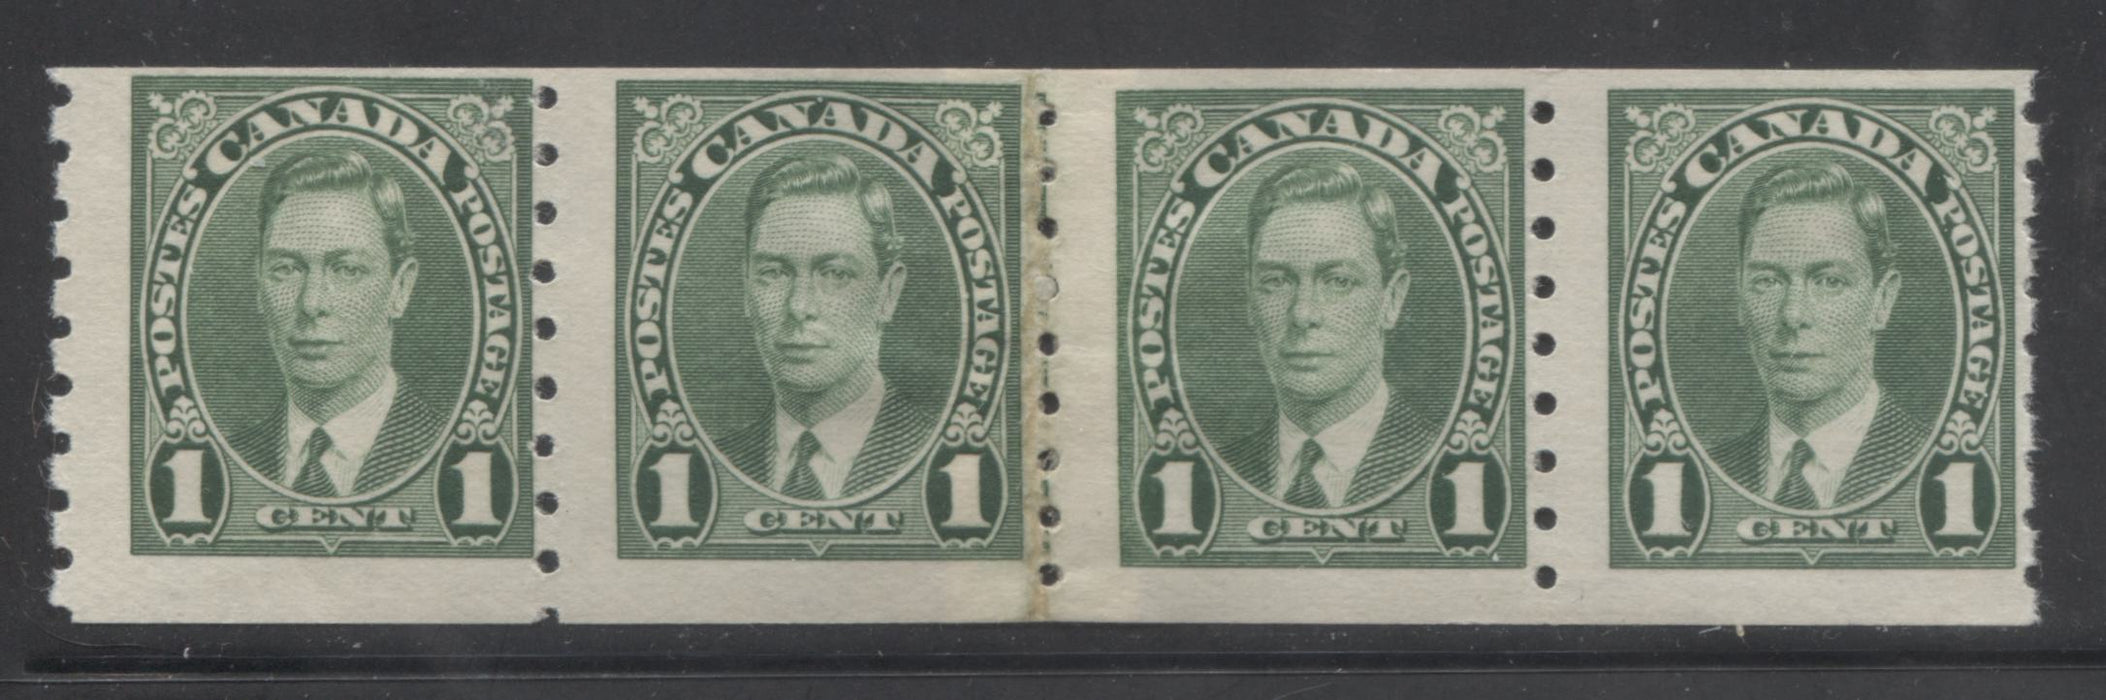 Canada #238i 1c Green King George VI 1937-1942 Mufti Issue, a Fine Mint OG Coil Repair Paste-Up Strip of 4 of the 1942 Printing